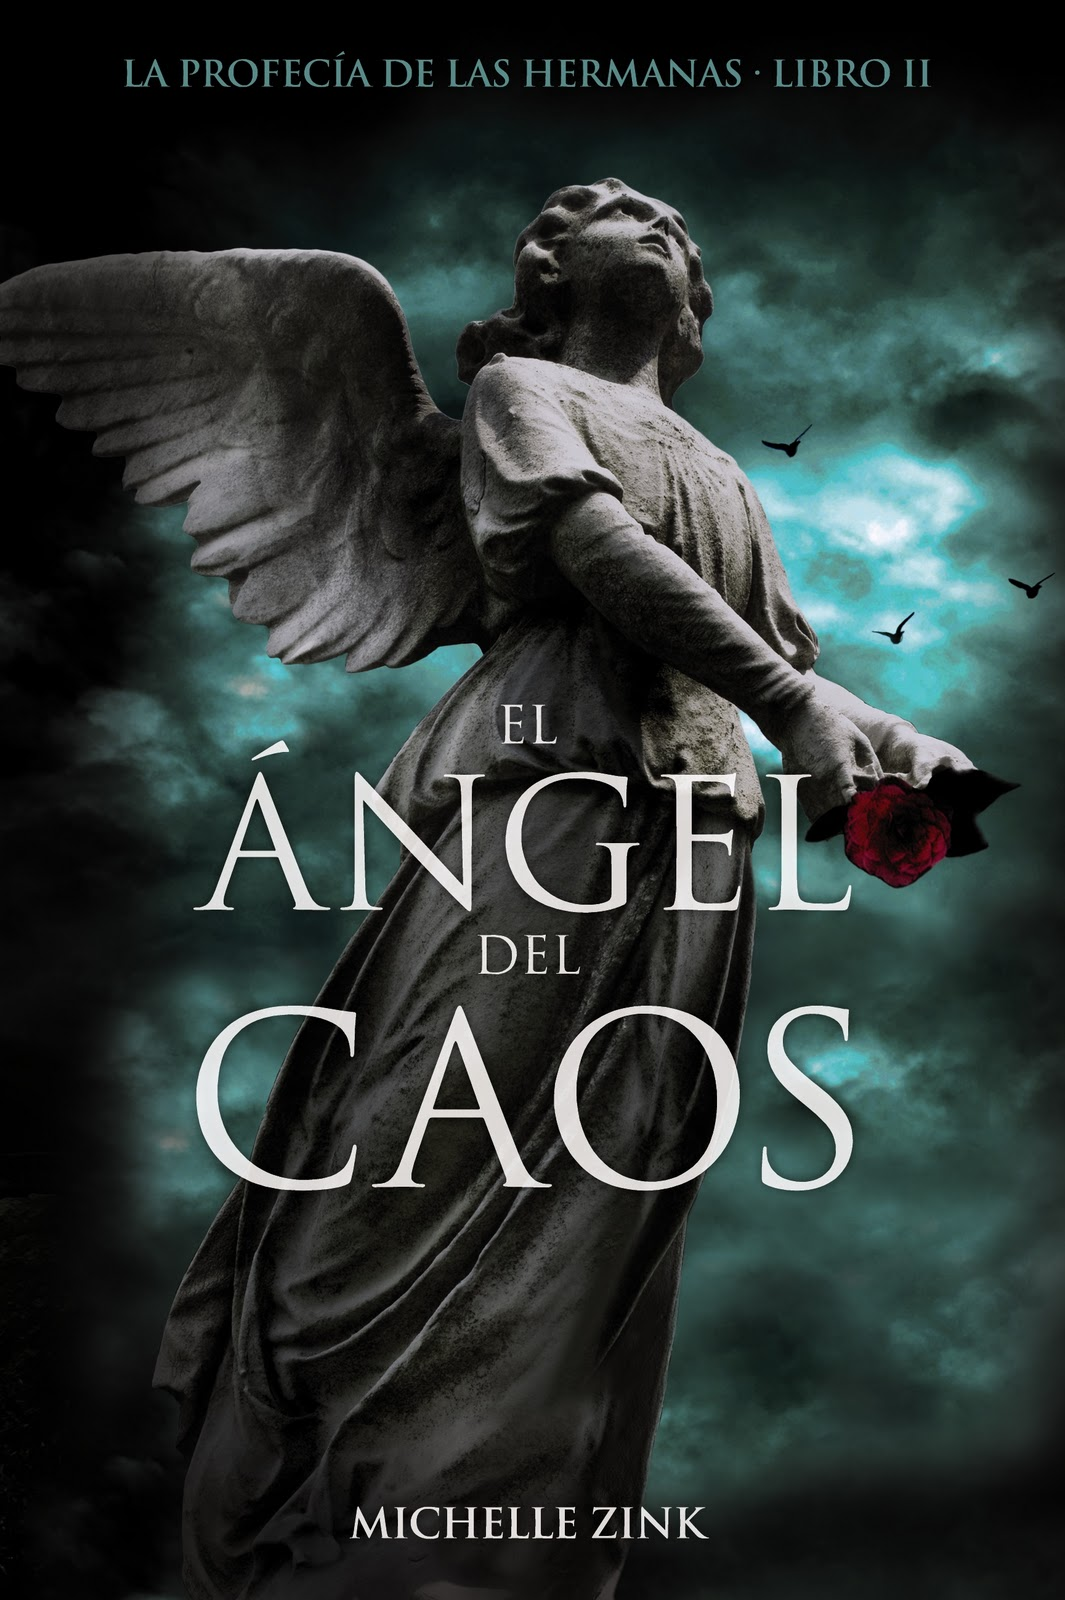 covet fallen angels 1 pdf